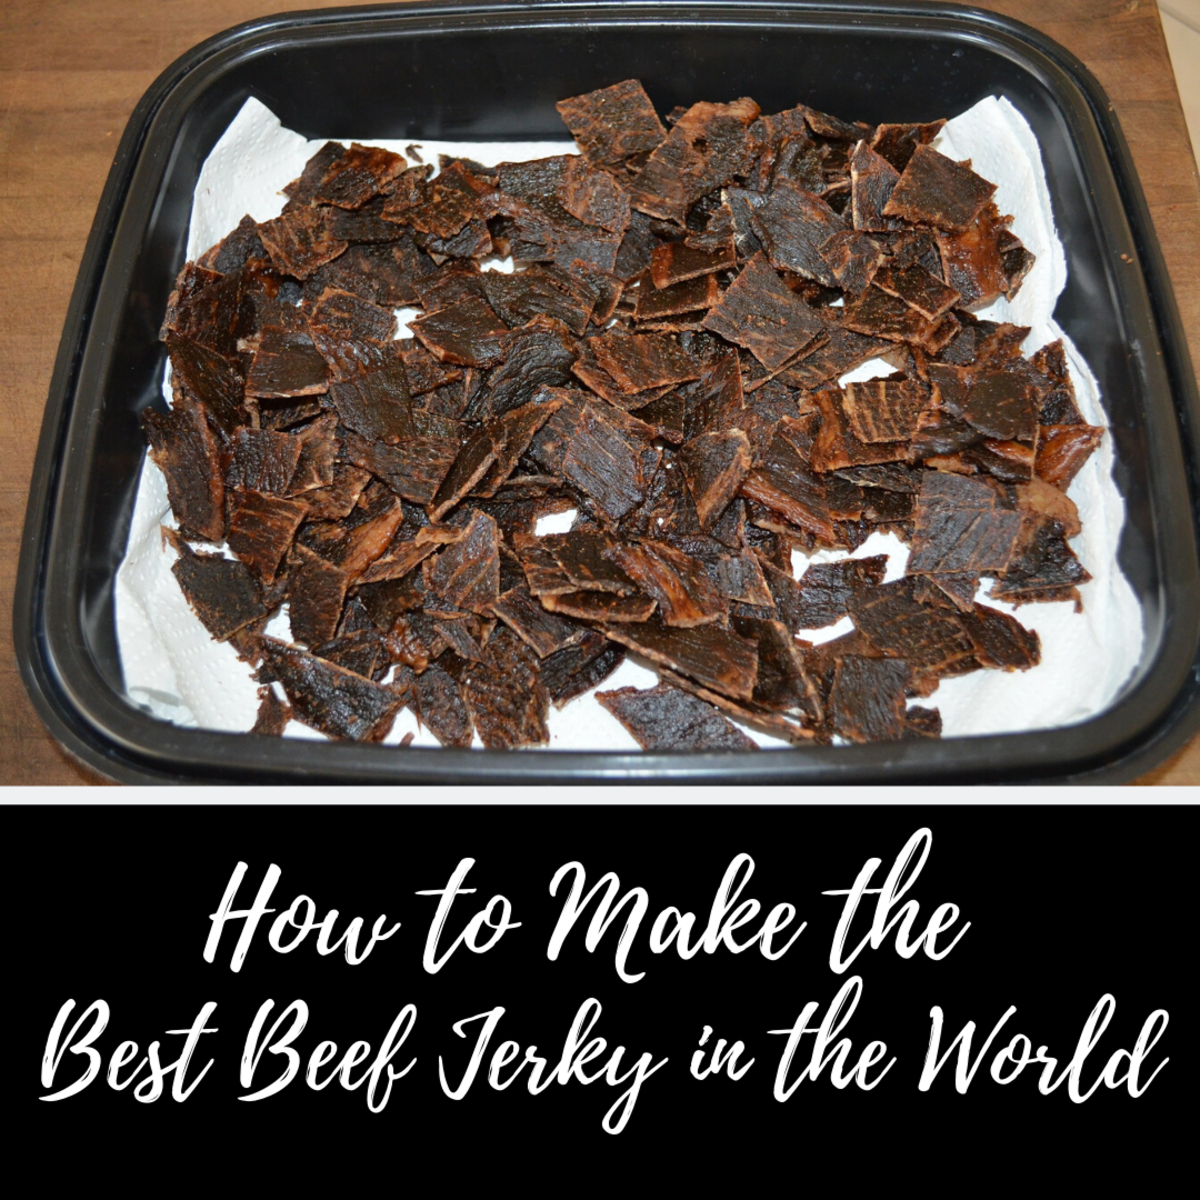 How to Make the Best Beef Jerky in the World